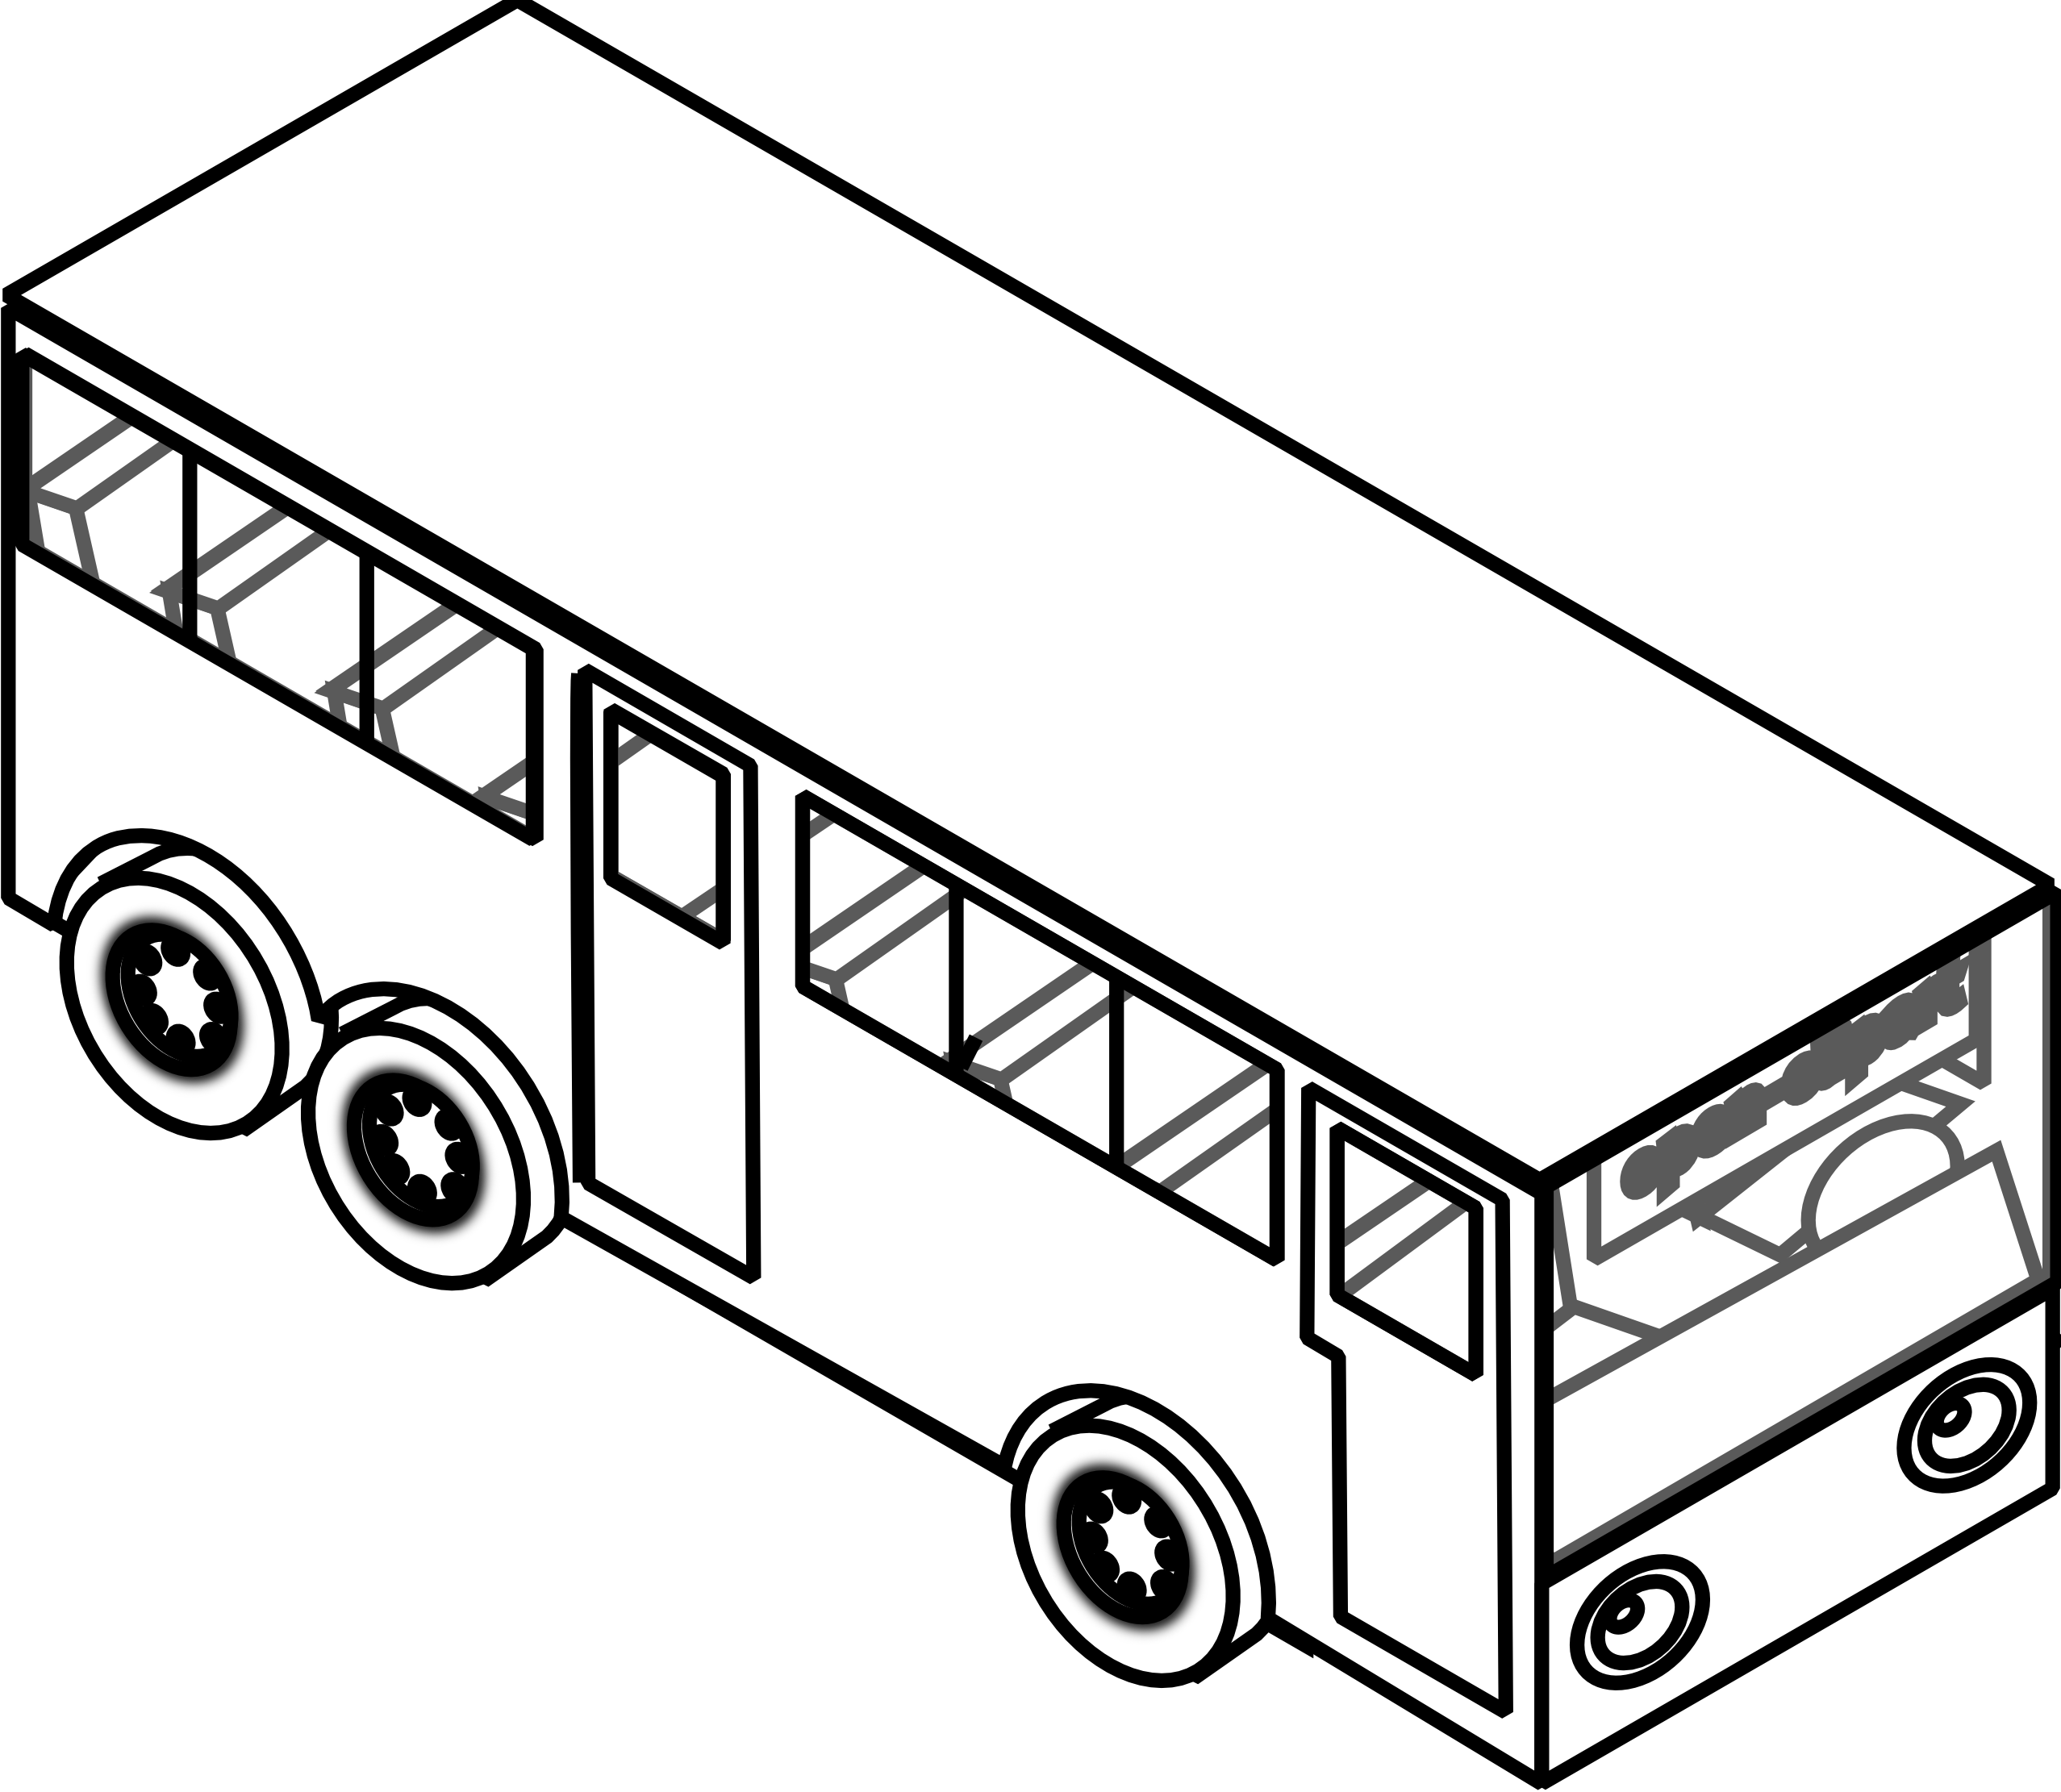 2555x2222 Black and white bus on road clipart collection